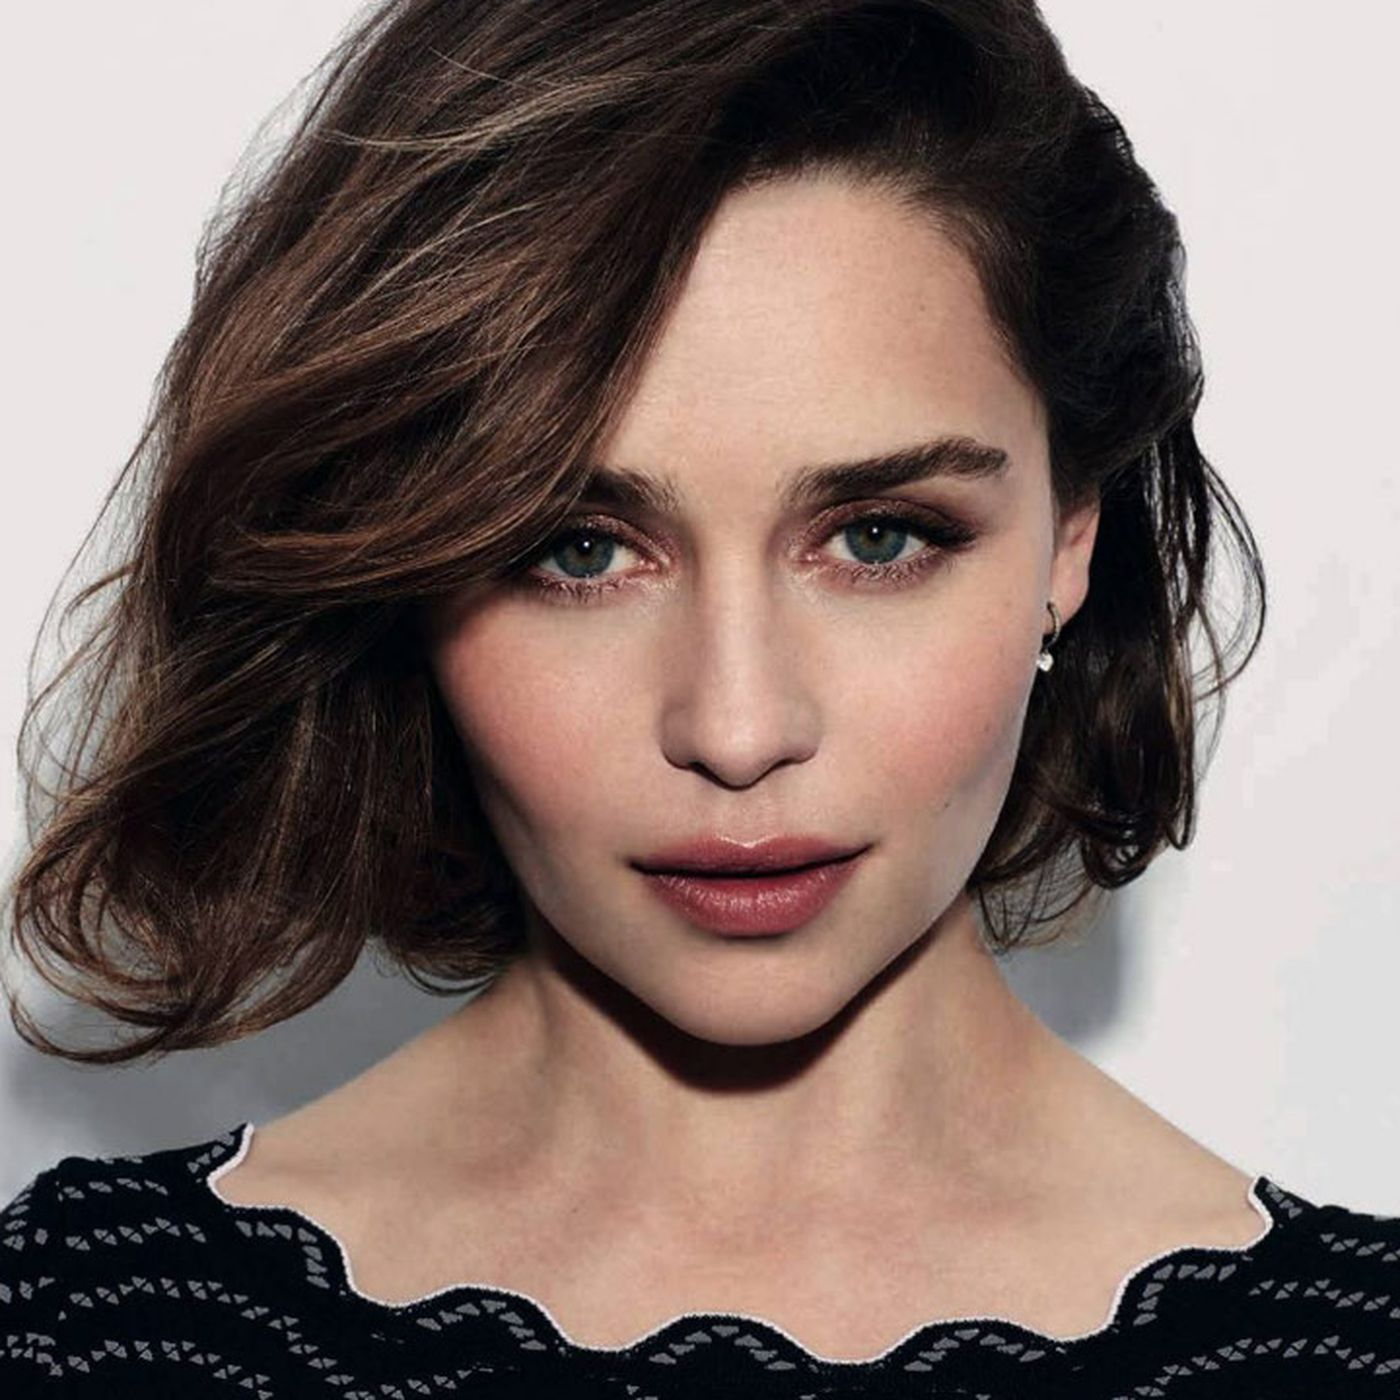 Game of Thrones  Emilia Clarke joins cast of Han Solo Star Wars film ... 79d63223b0df